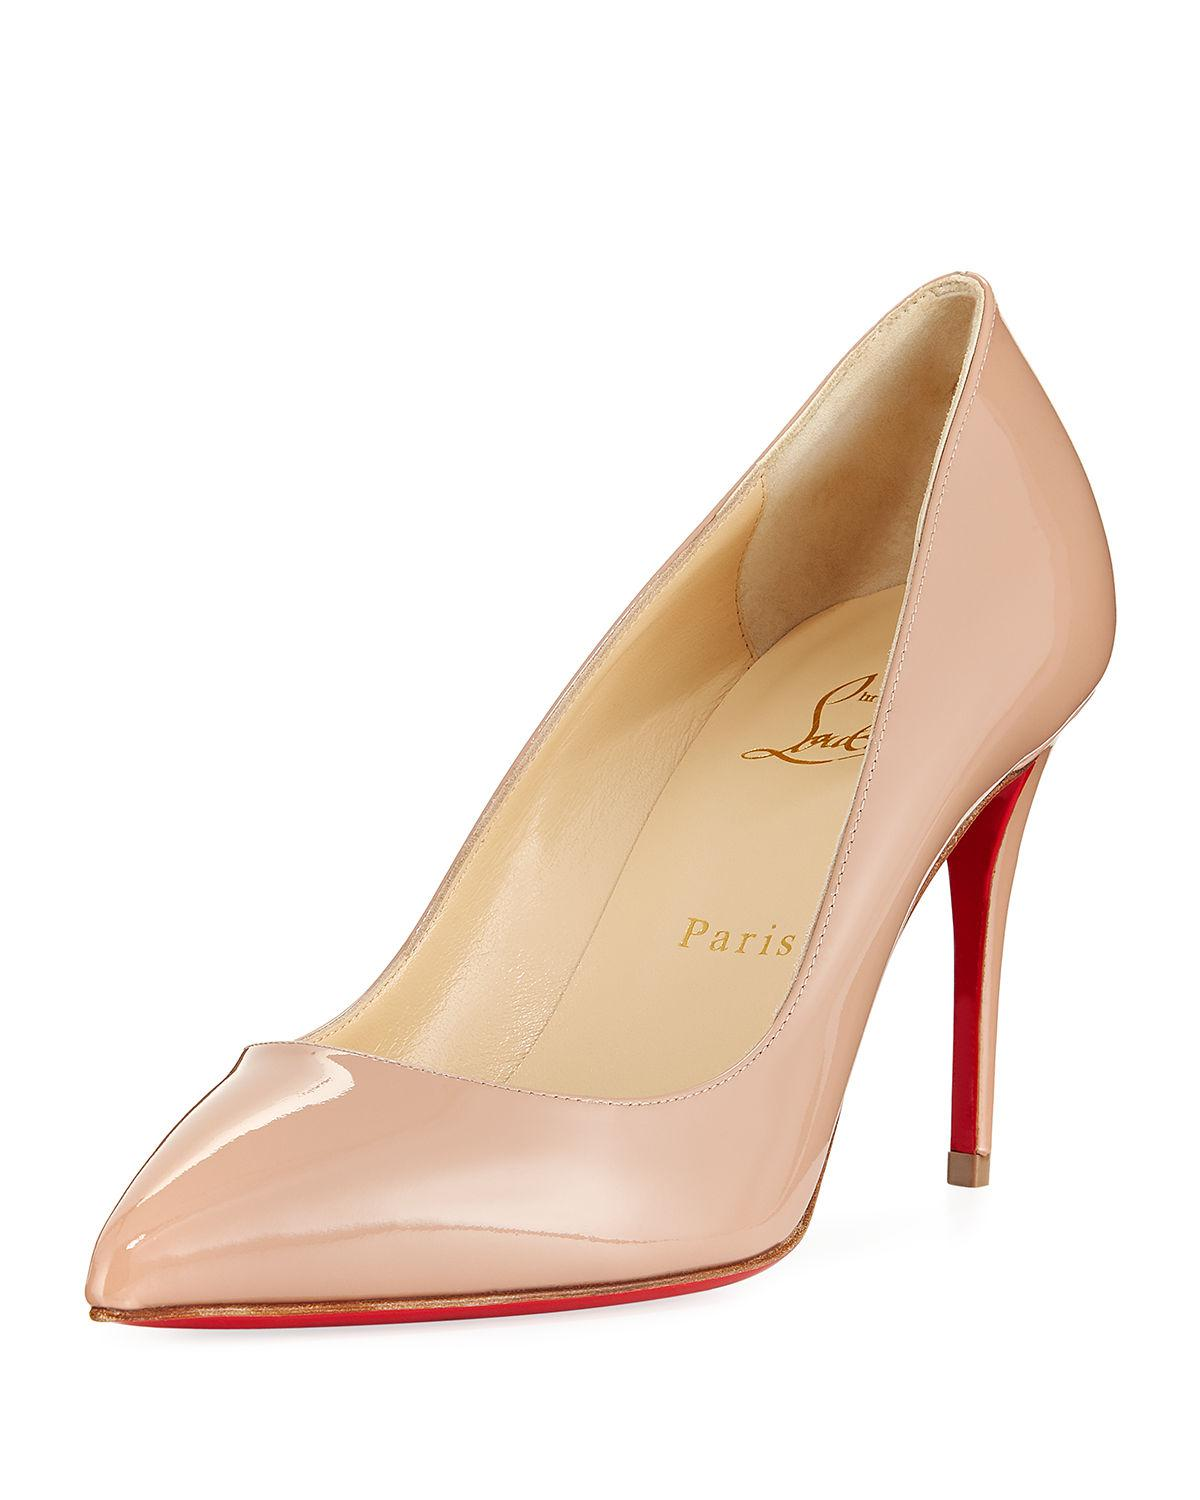 279986f520c Christian Louboutin Pigalle Follies 85mm Patent Red Sole Pump in ...